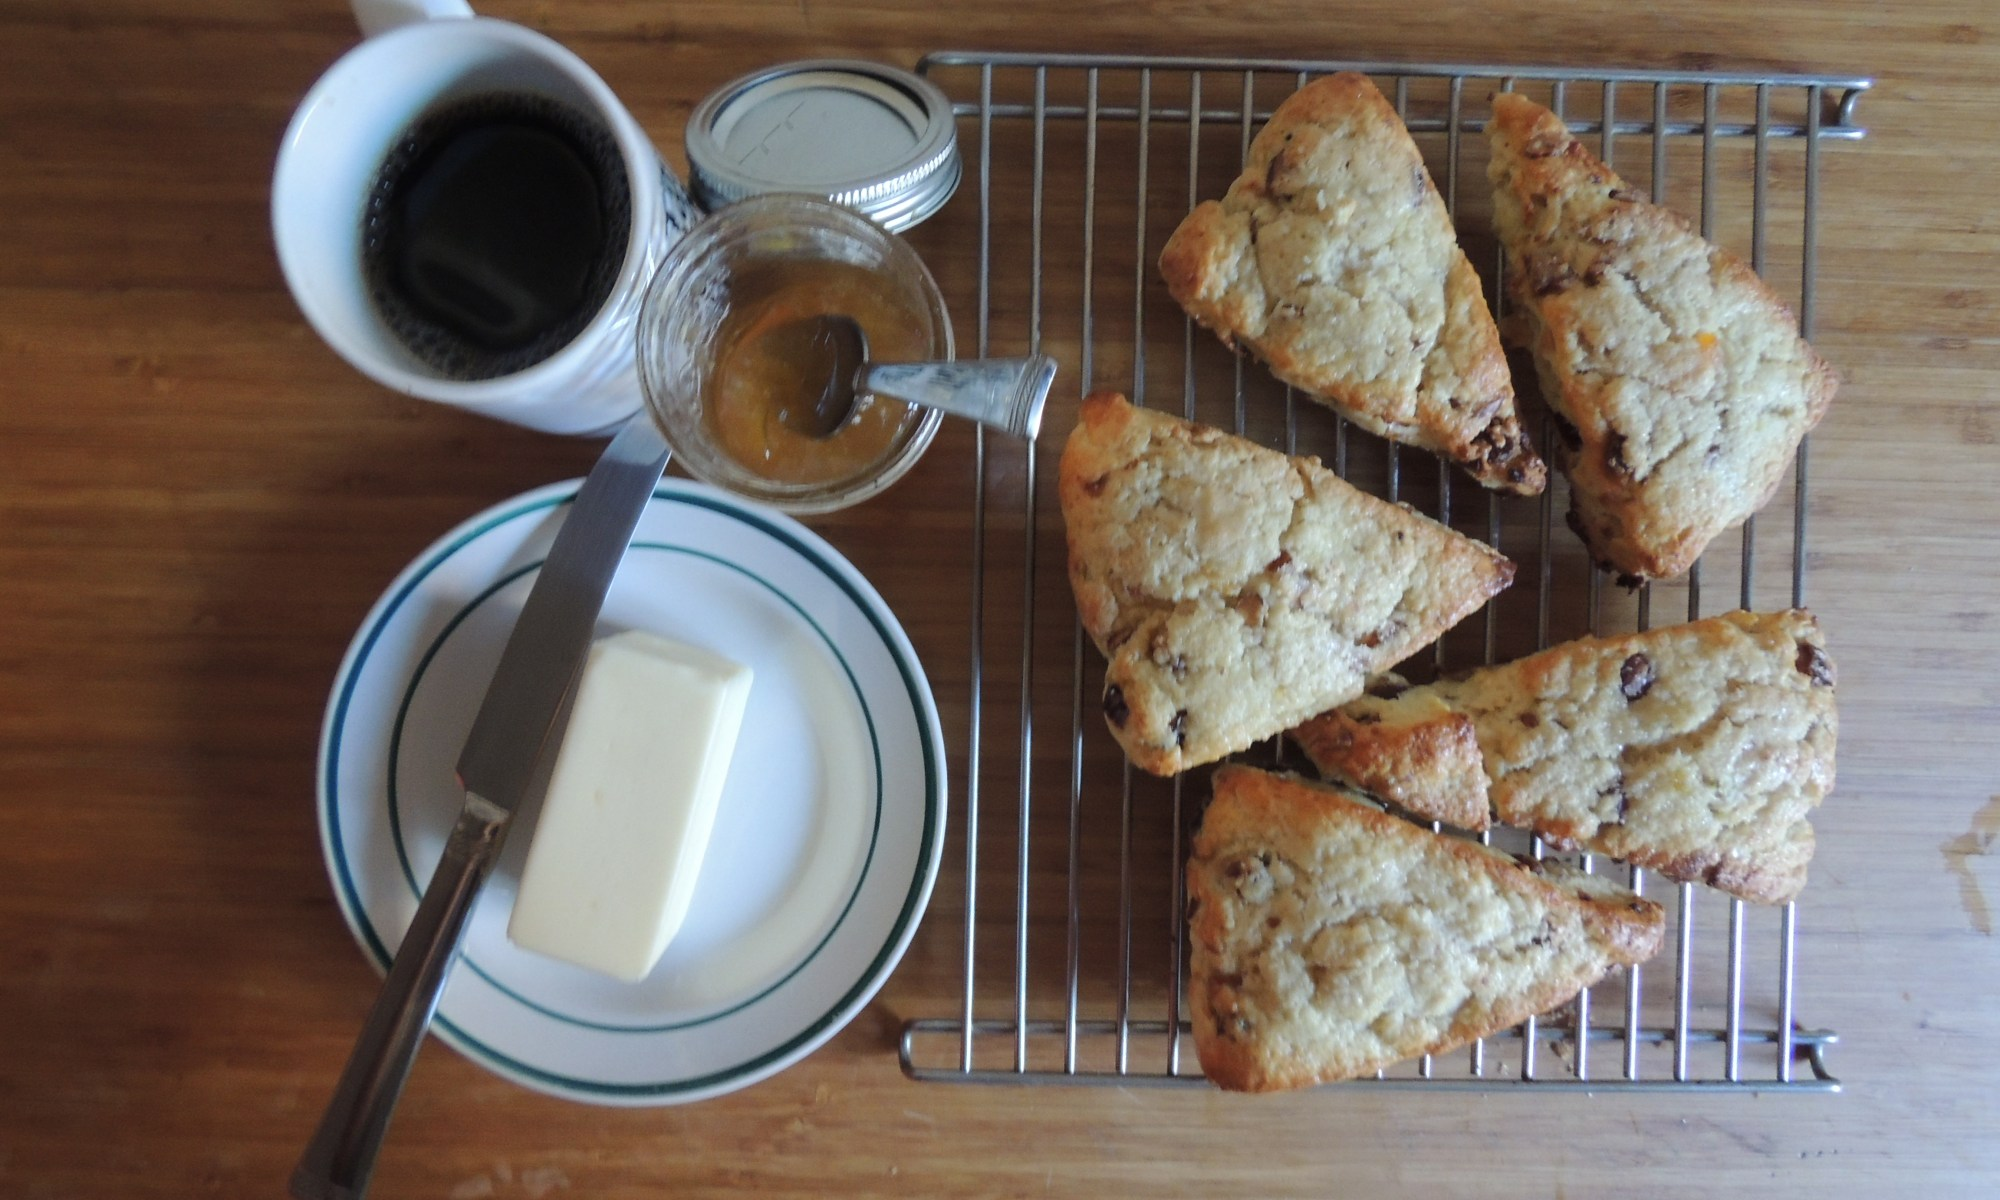 Freshly baked scones with butter. jam and a hot cup of coffee